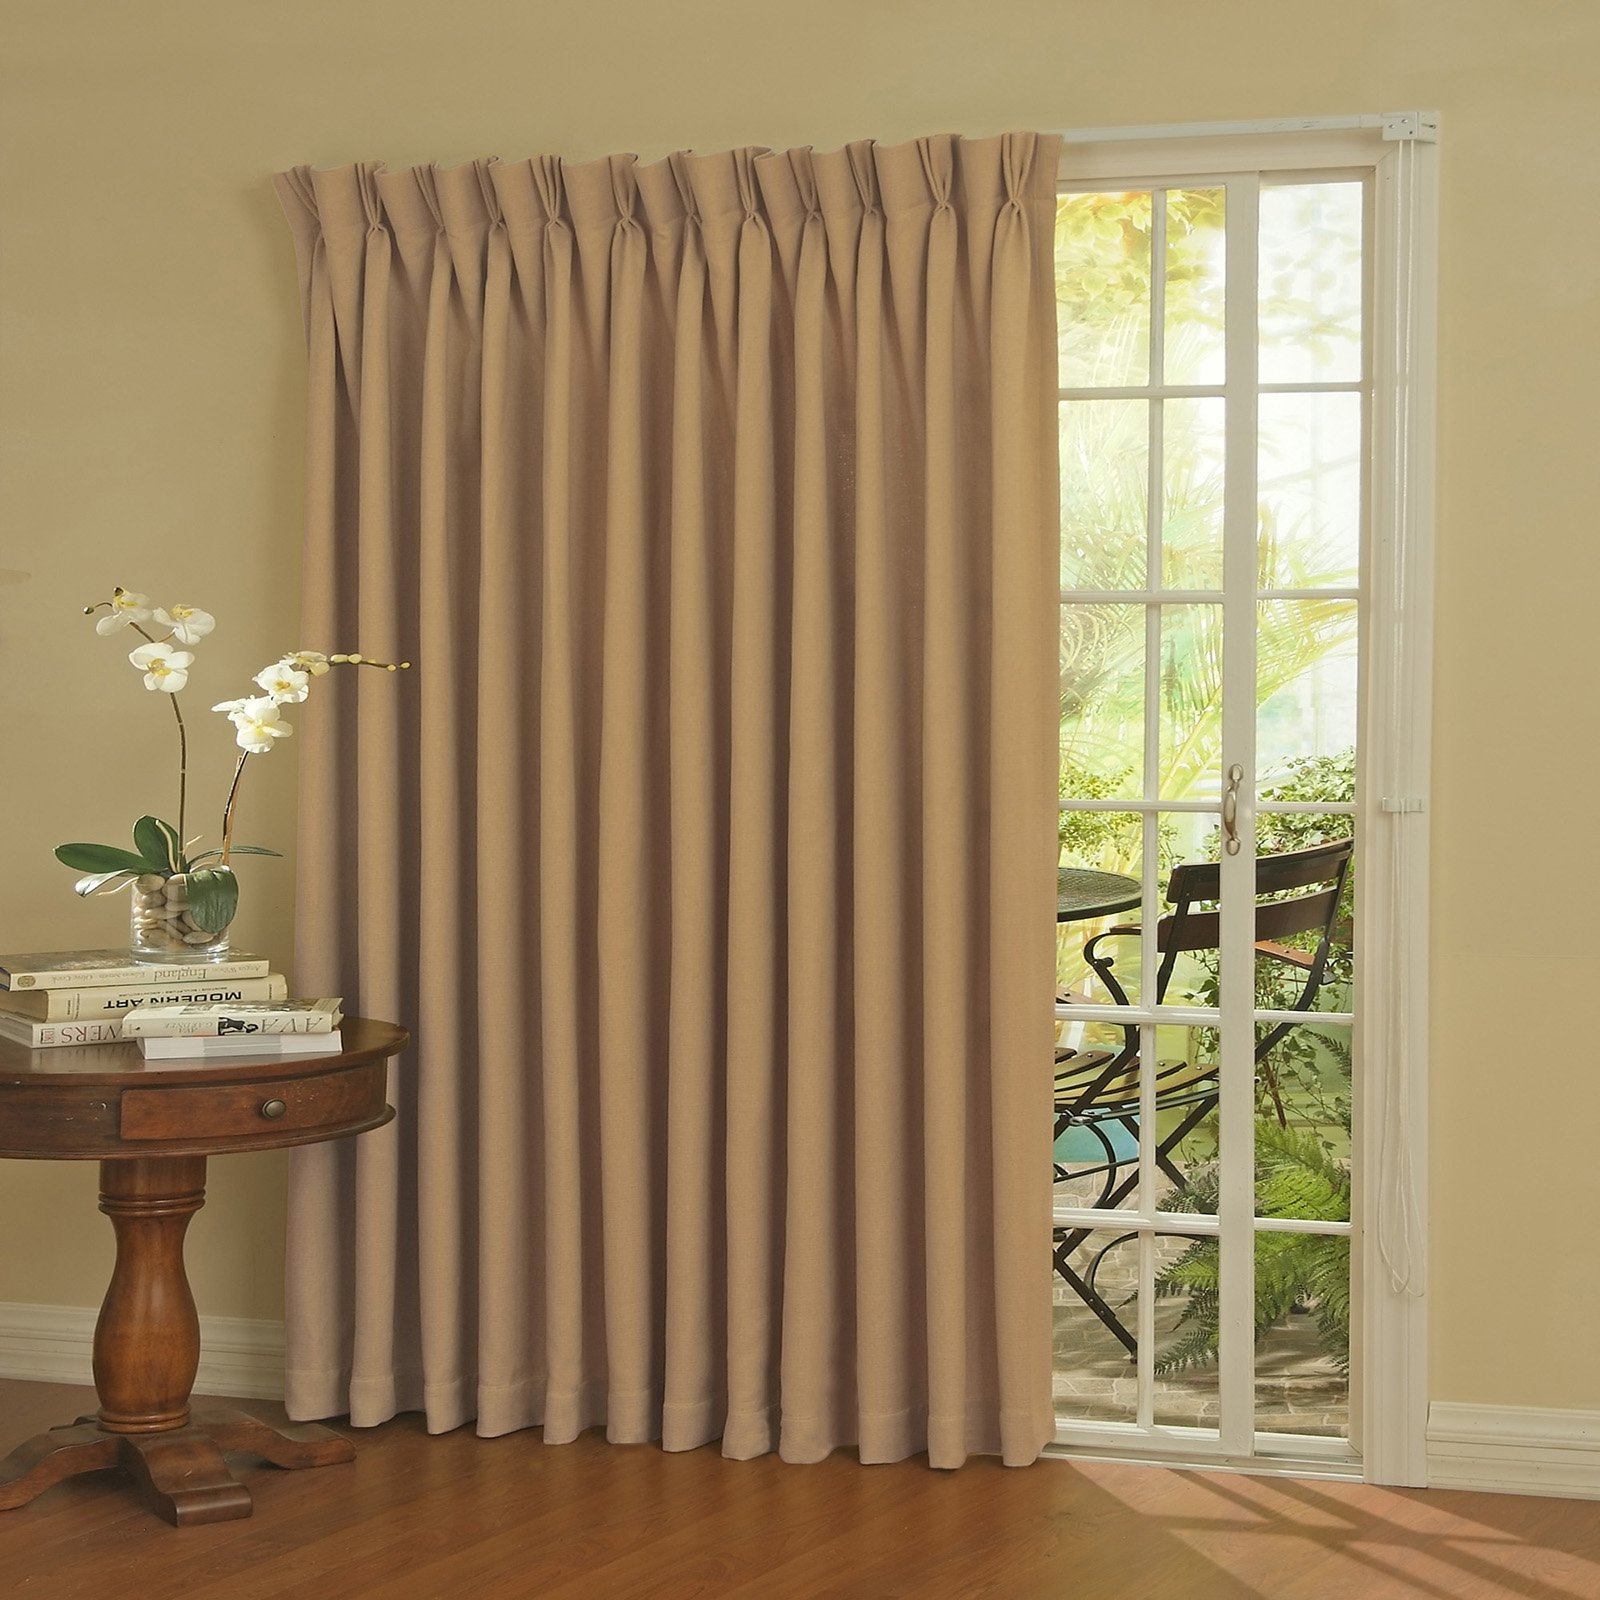 Eclipse Thermal Blackout Patio Door Curtain Panel Walmart